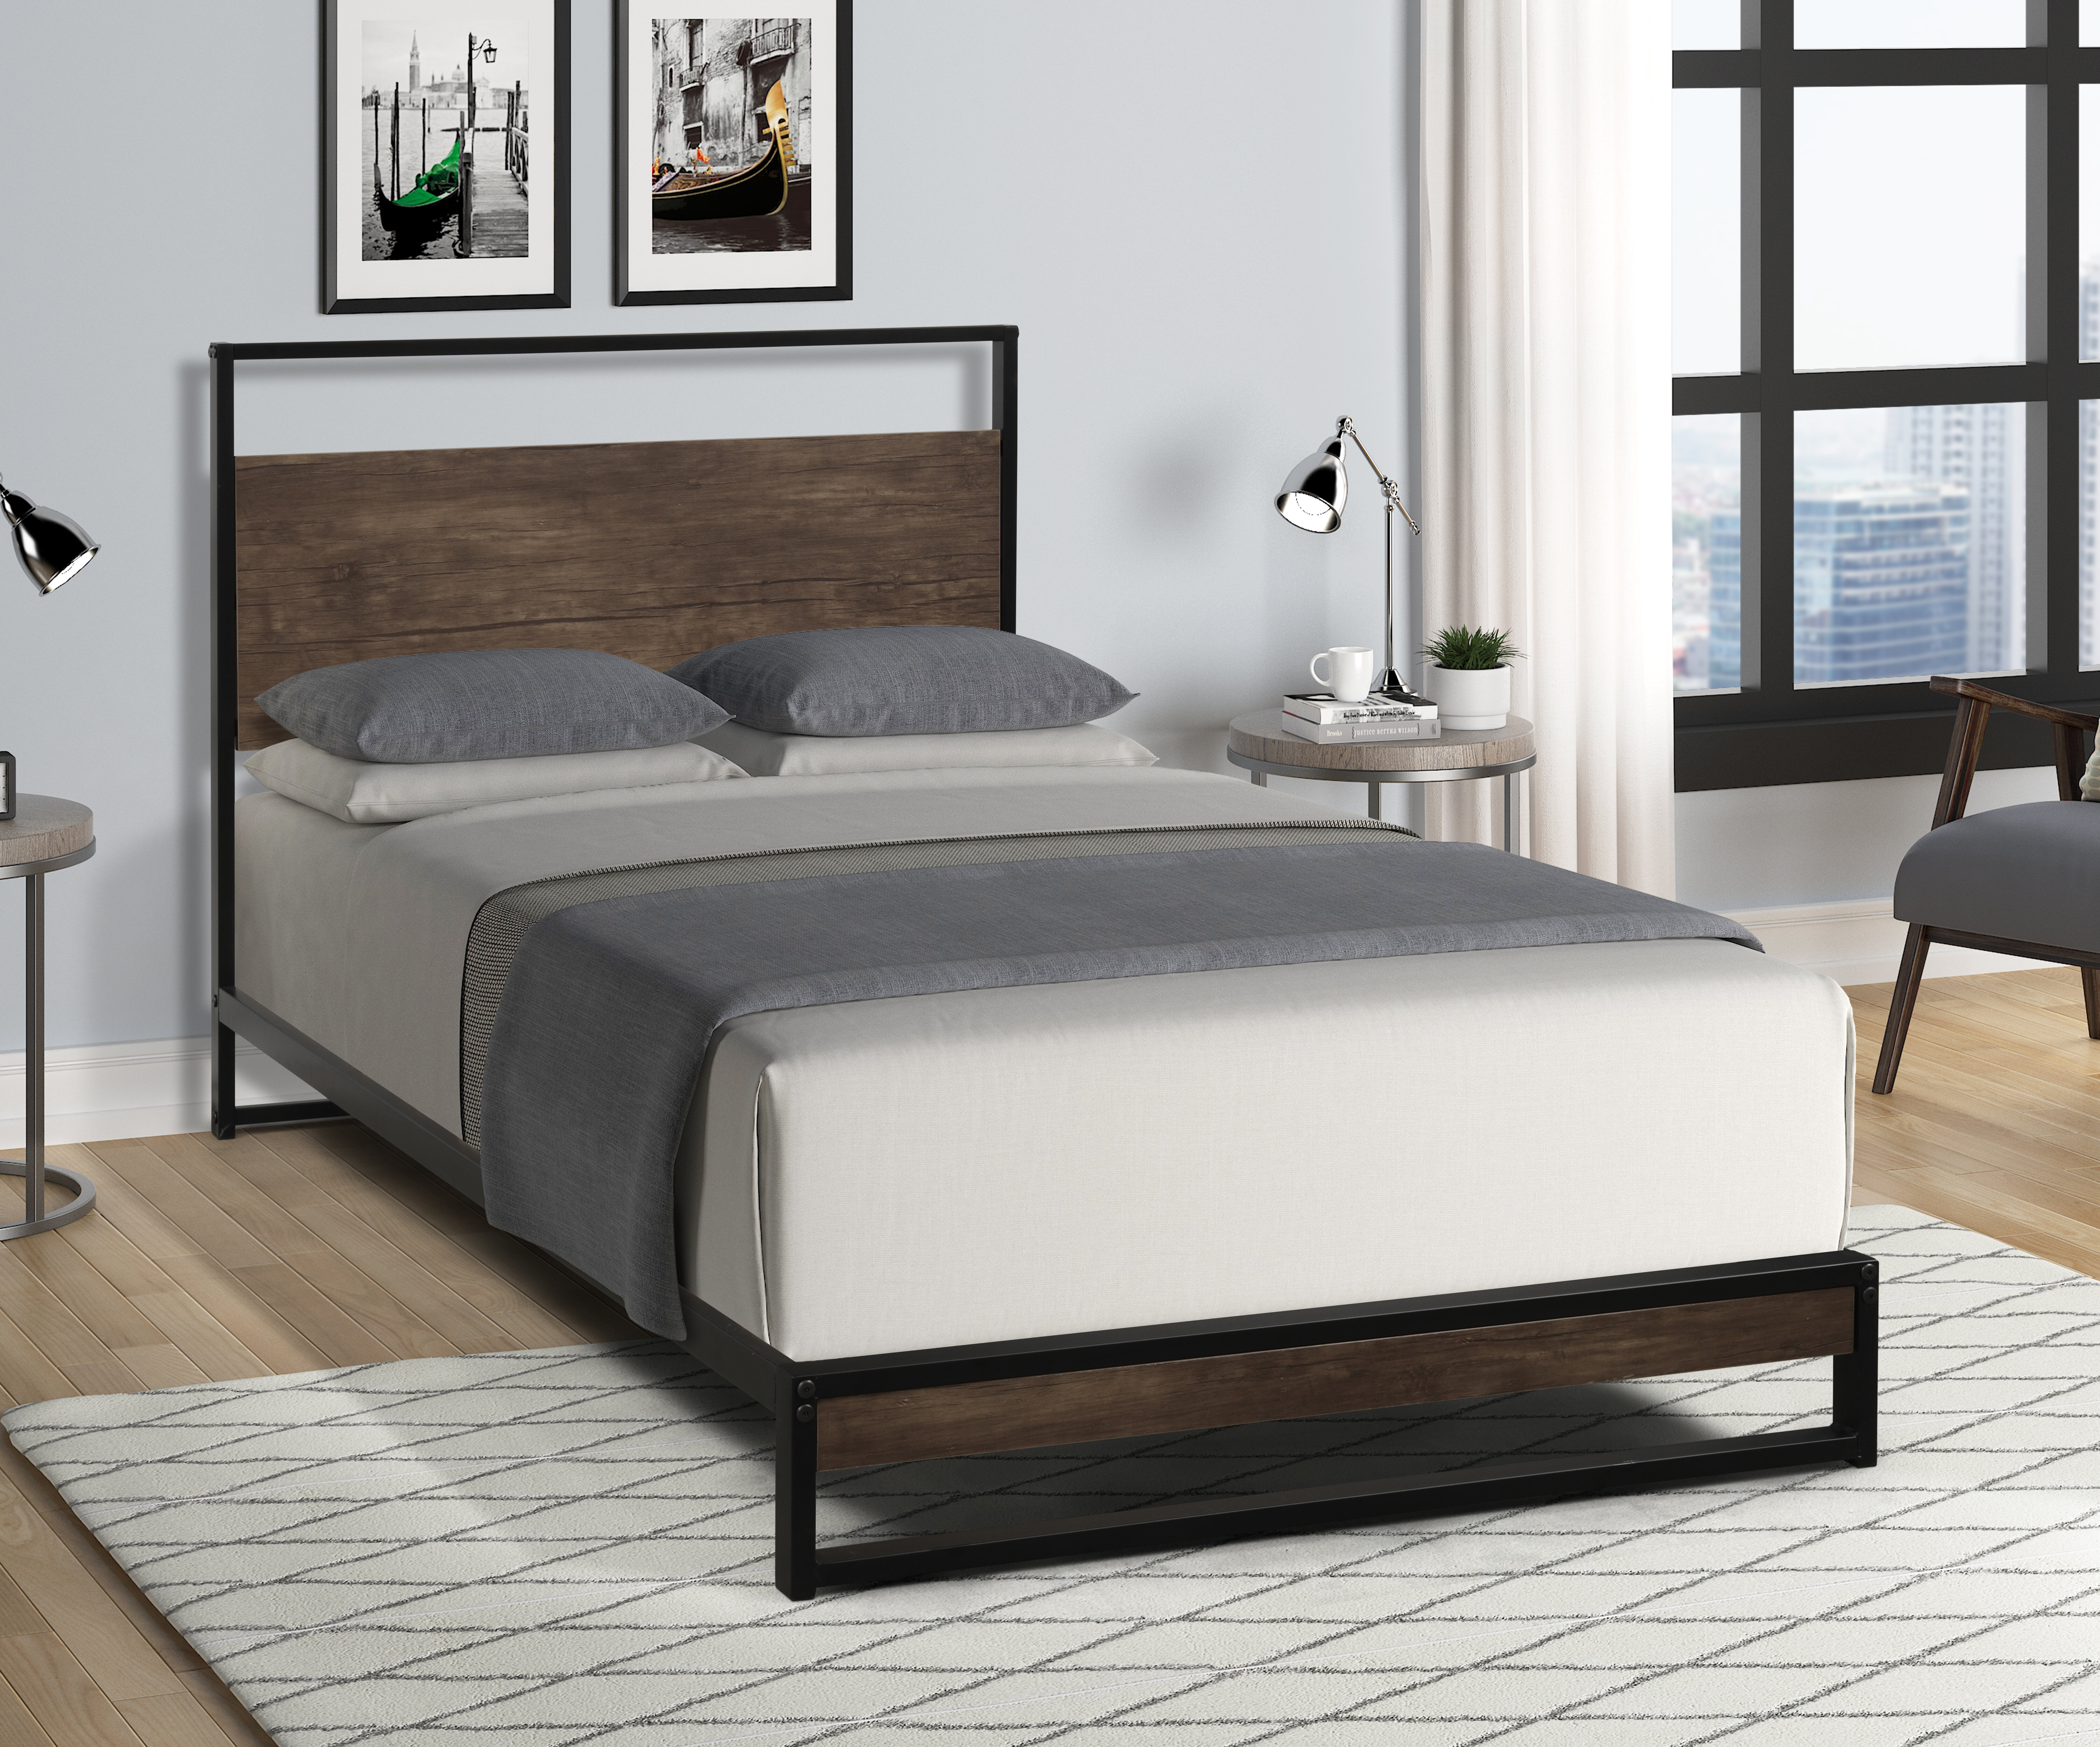 17 Stories Modern And Simple Metal Platform Bed Frame Wooden Headboard Steel Plate Support No Need For Spring Box Storage Space Under The Bed Wayfair Ca